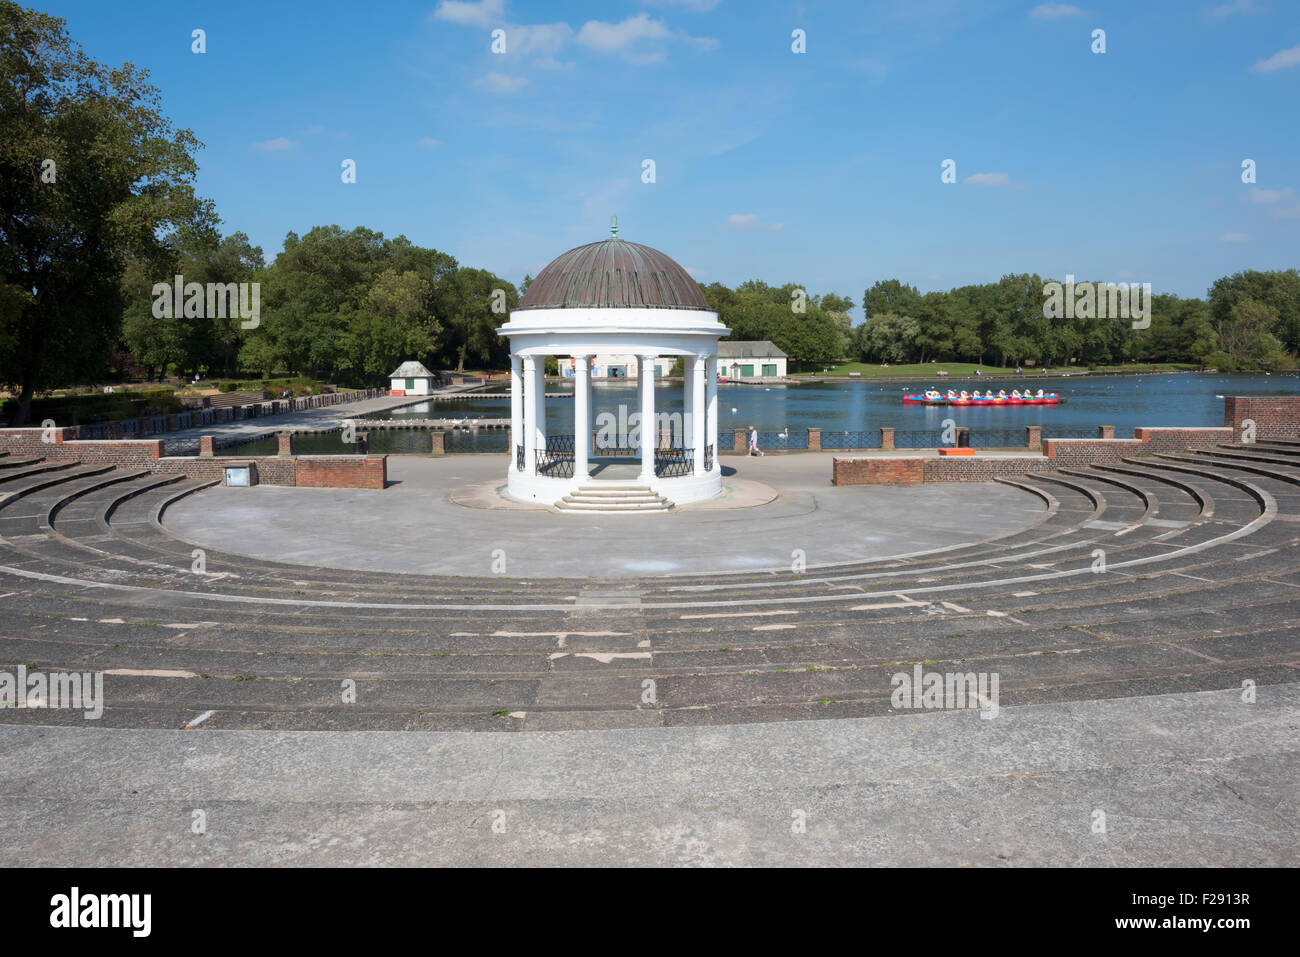 Bandstand and amphitheatre alongside the lake in Stanley Park, Blackpool, Lancashire - Stock Image